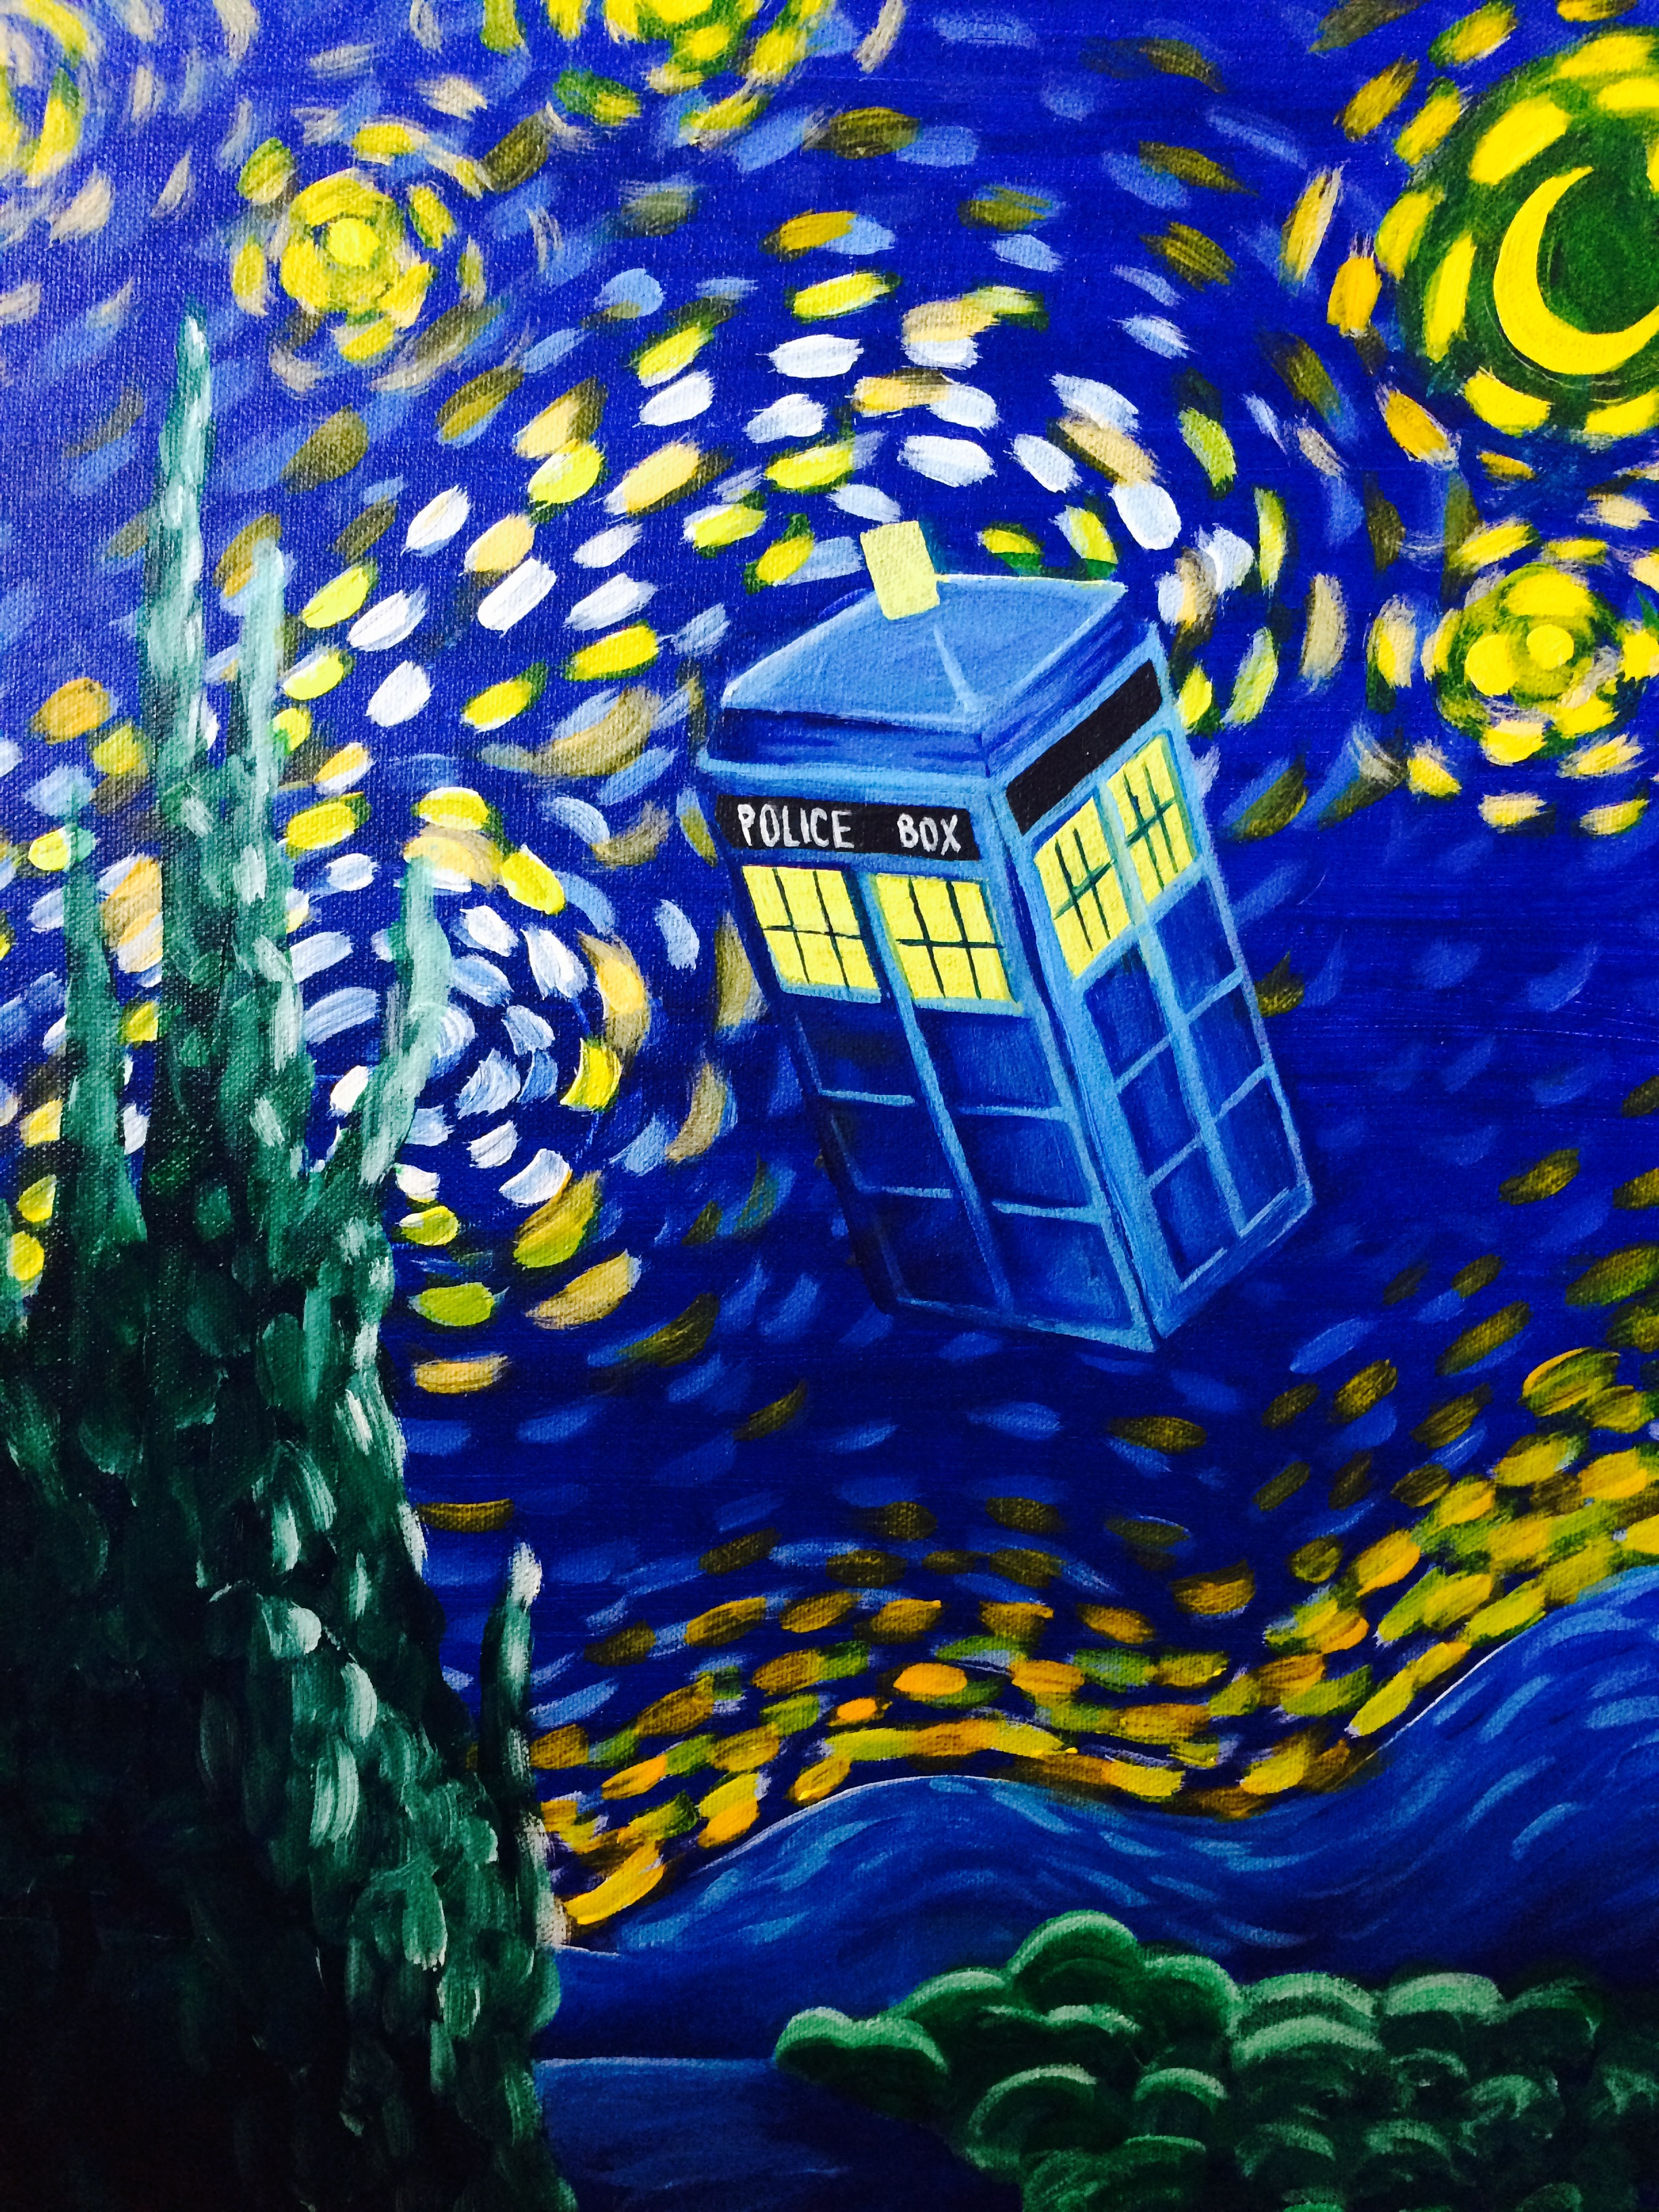 Dr Who, Painting, Paint and Sip, Starry Nights, Nerd Art